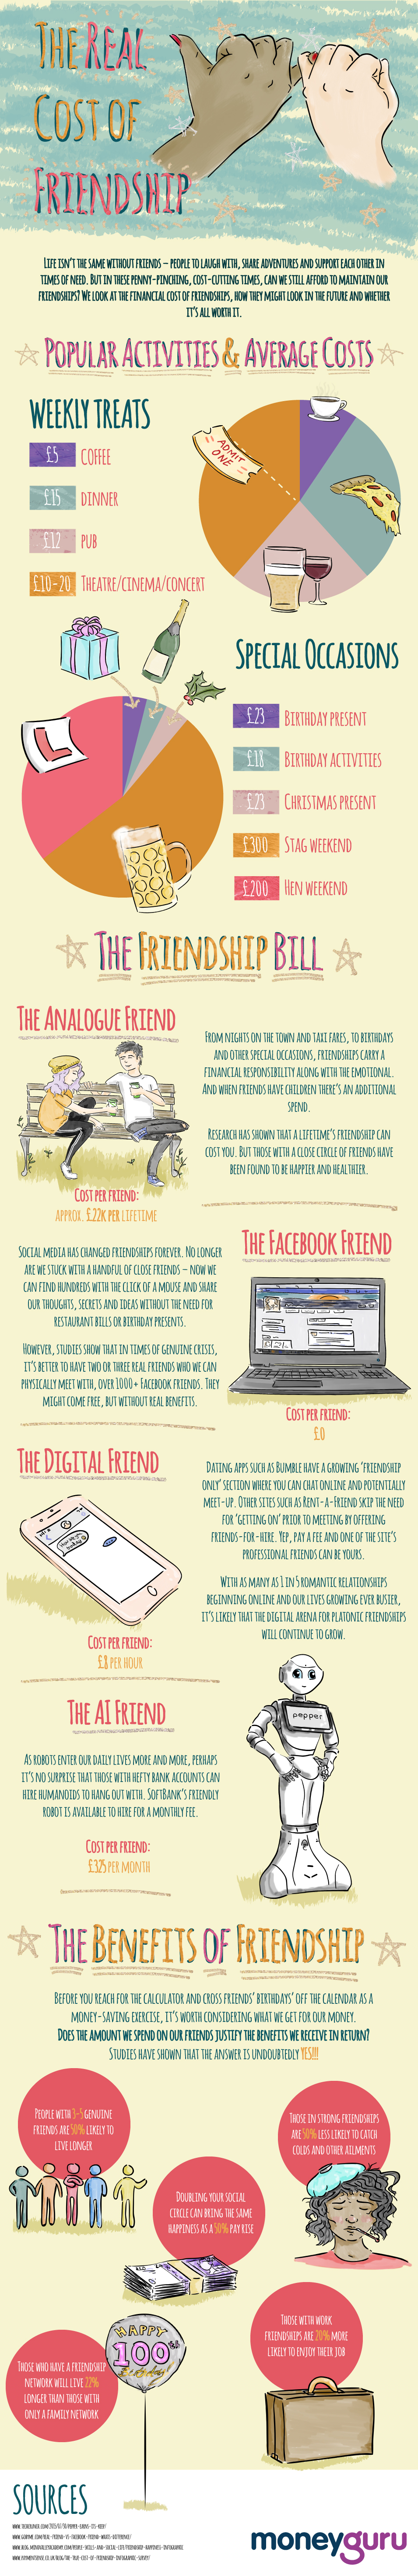 The Price and Value of Friendship - Infographic